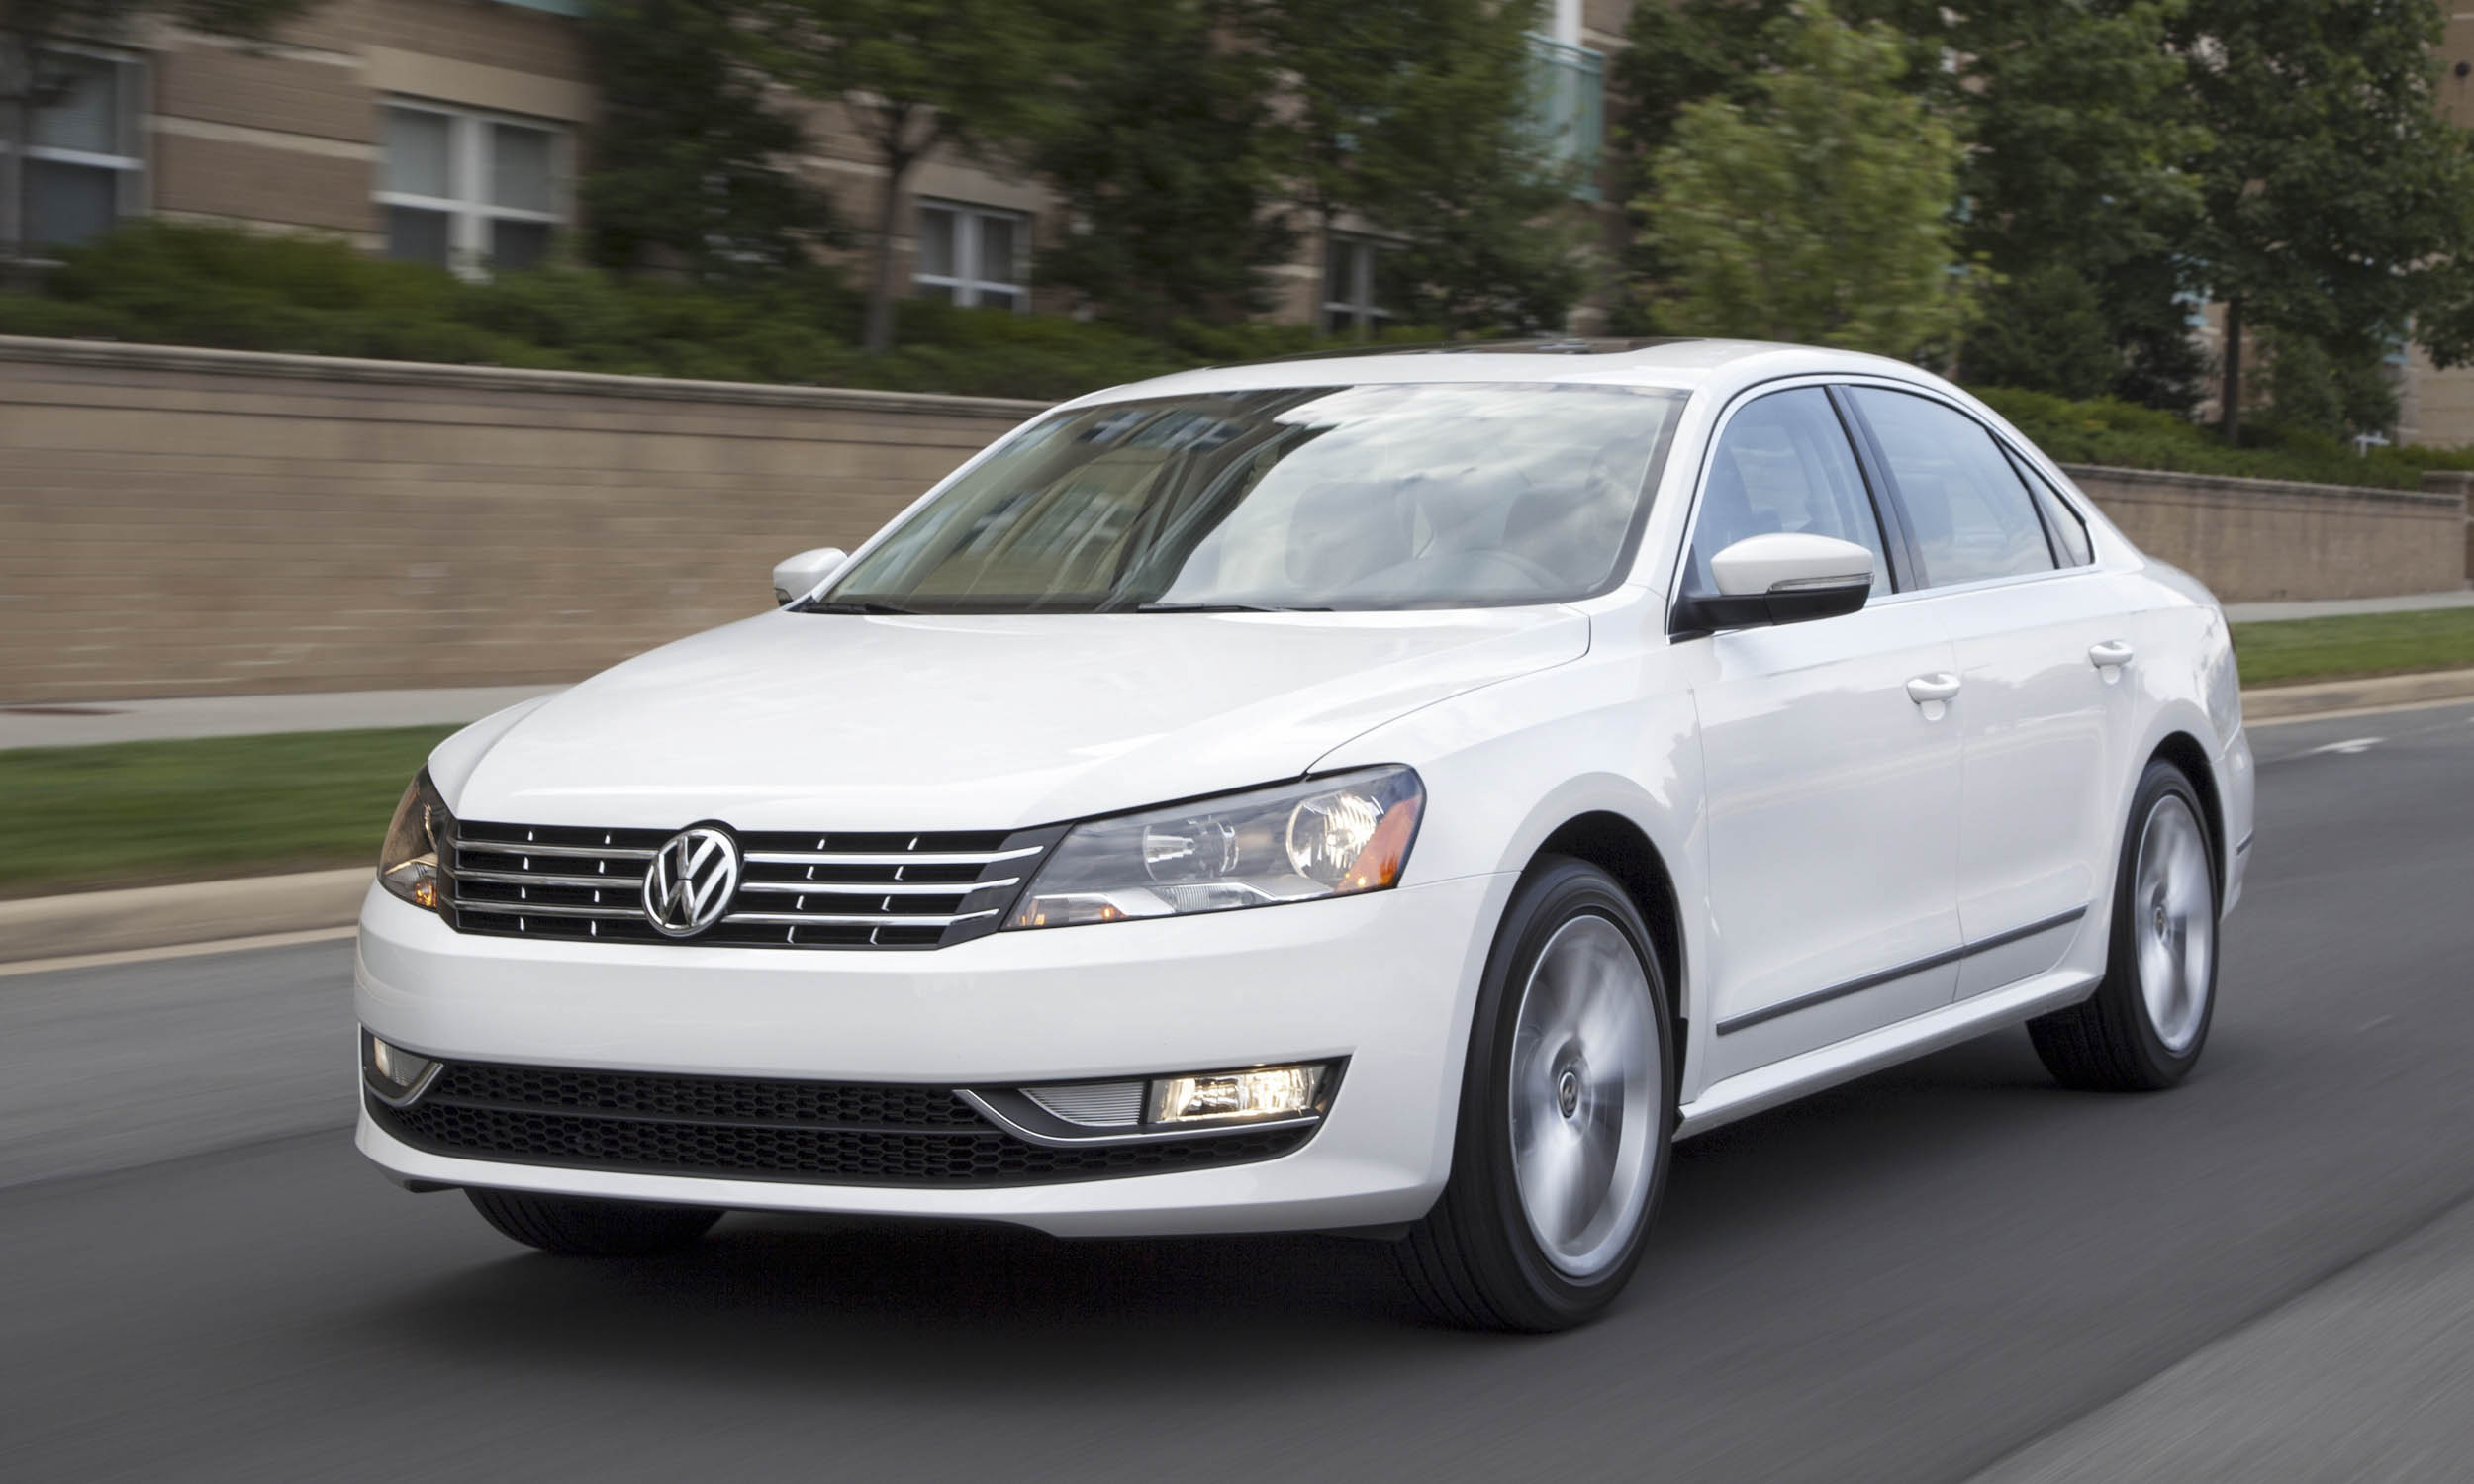 2013 Volkswagen Passat3?utm_source=rss&utm_medium=rss latest automotive safety recalls autonxt  at gsmx.co